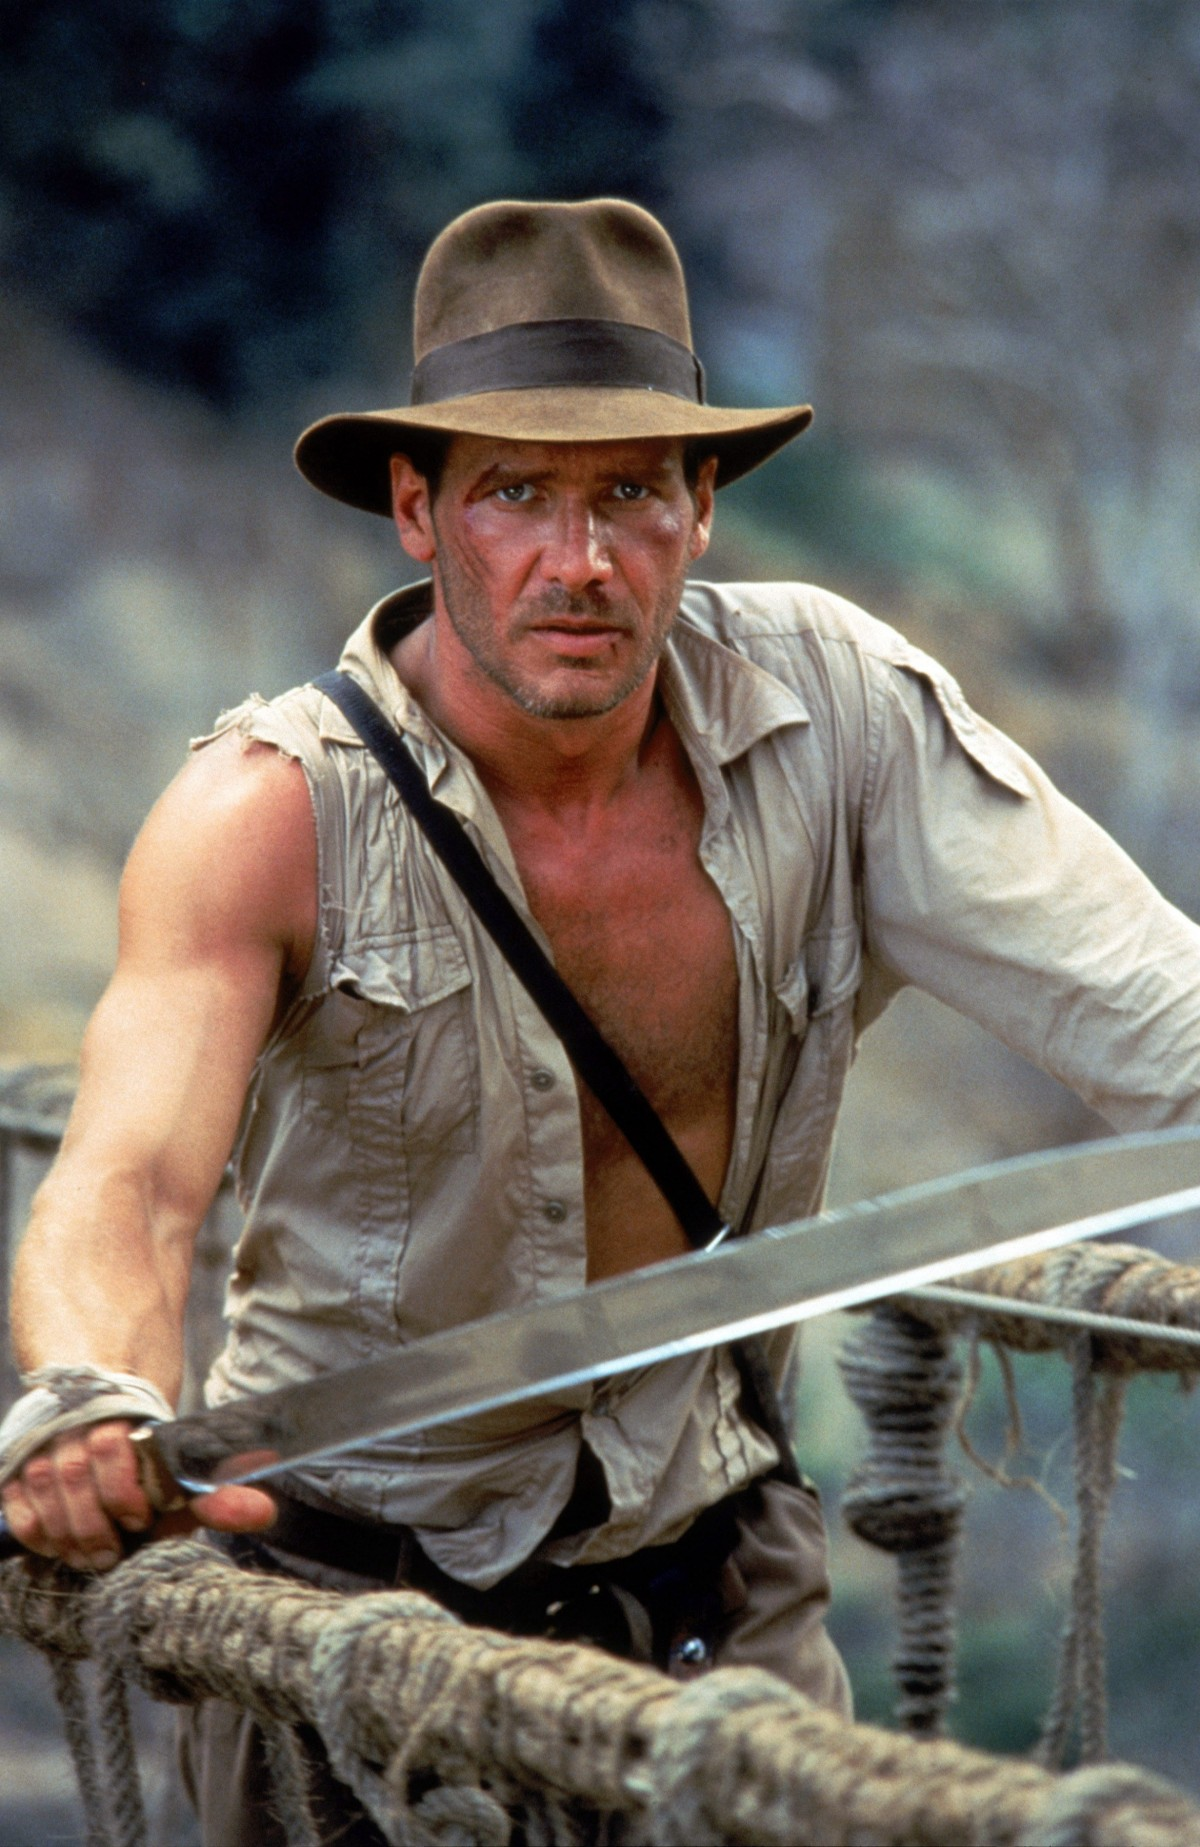 Harrison Ford nei panni di Indiana Jones, all'anagrafe Henry Walton Jones, Jr. L'archeologo avventuriero, protagonista di quattro pellicole scritte da George Lucas e dirette da Steven Spielberg e di una serie televisiva, è un personaggio creato da Lucas nel 1973. Harrison Ford, Indiana Jones cult cinema George Lucas action movies Steven Spielberg cultstories cult stories cultstories cinema cult story cultstory art culture music ipse dixit aneddoti citazioni frasi famose aforismi immagini foto personaggi cultura musica storie facts fatti celebrità vip cult spettacoli live performance concerto photo photography celebrity giornalismo scrittura libri genio pop icon attore cantante solista pittrice scultore attrice star diva sex symbol mito indiana jones and the last crusade indiana jones and the temple of doom indiana jones 5 indiana jones movies indiana jones costume indiana jones hat indiana jones and the raiders of the lost ark indiana jones 4 indiana jones theme song indiana jones cast indiana jones adventure indiana jones and the last crusade cast indiana jones and the fate of atlantis indiana jones and the temple of doom cast indiana jones and the infernal machine indiana jones and the emperor's tomb indiana jones actors a new indiana jones movie a young indiana jones a list of indiana jones movies a real life indiana jones indiana jones a disneyland indiana jones a petra indiana jones a disney it a satchel indiana jones jugar a indiana jones jugar a indiana jones lego indiana jones bag indiana jones books indiana jones boots indiana jones boulder indiana jones blu ray indiana jones box set indiana jones bullwhip indiana jones bar indiana jones boulder scene indiana jones bridge indiana b jones /b indiana jones b movie b.s.o indiana jones indiana jones characters indiana jones crystal indiana jones costume diy indiana jones crystal skull cast indiana jones cosplay indiana jones cartoon indiana jones chinese kid indiana jones costume womens indiana jones c3po indiana jones c c pas bien indiana jones indiana jones disneyland indiana jones disney indiana jones dad indiana jones disney world indiana jones dvd indiana jones dog indiana jones disneyland paris indiana jones drinking game indiana jones desktop adventures indiana jones diary d'indiana jones jeux de indiana jones musique d'indiana jones jeu d'indiana jones pere d indiana jones fils d'indiana jones acteur de indiana jones femme de indiana jones personnage de indiana jones film d'indiana jones indiana jones epic stunt spectacular indiana jones exhibit indiana jones equipment indiana jones emperor's tomb indiana jones easter eggs indiana jones egypt indiana jones epic stunt spectacular closing indiana jones et le temple maudit indiana jones ending indiana jones emoji petra e indiana jones quem e indiana jones indiana jones e l'ultima crociata indiana jones e il tempio maledetto indiana jones e l'ultima crociata streaming indiana jones films indiana jones full movie indiana jones face melt indiana jones fedora indiana jones font indiana jones first movie indiana jones face melt gif indiana jones fancy dress indiana jones fate of atlantis indiana jones father indiana jones f indiana jones games indiana jones gif indiana jones gun indiana jones girl indiana jones girlfriend indiana jones girl costume indiana jones golden idol indiana jones glasses indiana jones grail indiana jones greatest adventures g man indiana jones mark g jones indiana hombres g indiana jones hombres g indiana jones youtube los hombres g indiana jones cancion hombres g indiana jones hombres g indiana jones mp3 video hombres g indiana jones cancion de hombres g indiana jones nombre de g indiana jones indiana jones holy grail indiana jones heart indiana jones halloween costume indiana jones hollywood studios indiana jones hat amazon indiana jones hat name indiana jones holster indiana jones hat and whip indiana jones height requirement indiana jones imdb indiana jones idol indiana jones images indiana jones in order indiana jones infernal machine indiana jones i hate snakes indiana jones in real life indiana jones indy indiana jones invisible bridge indiana jones it belongs in a museum petra i indiana jones lego batman i indiana jones indiana jones jacket indiana jones jokes indiana jones job indiana jones journal indiana jones junior indiana jones jehovah indiana jones john williams indiana jones jacket costume indiana jones jeep indiana jones jock j crew indiana jones boots j crew indiana jones j w jones indiana indiana jones j billy j mitchell indiana jones juegos de indiana jones indiana jones j williams indiana jones kali ma indiana jones kid indiana jones kingdom indiana jones kid costume indiana jones knife indiana jones knight indiana jones kingdom of crystal skull online indiana jones kiss indiana jones kali ma gif indiana jones karen circle k jonesboro indiana indiana jones k hudba k filmu indiana jones vk streaming indiana jones indiana jones lego indiana jones last crusade indiana jones lego sets indiana jones lego game indiana jones lost ark indiana jones leather jacket indiana jones logo indiana jones leap of faith indiana jones last crusade cast indiana jones list l'indiana jones steven l. jones indiana l'entrepot indiana jones lego l'integrale indiana jones l arche perdue indiana jones streaming l ultima crociata indiana jones l'ultima crociata indiana jones streaming l'arca perduta indiana jones l'histoire de indiana jones indiana jones l'arca perduta streaming indiana jones movies list indiana jones music indiana jones meme indiana jones melting face indiana jones marion indiana jones map indiana jones movie poster indiana jones melting face gif indiana jones motorcycle m&m indiana jones m and m indiana jones game indiana jones m-1080p m. patate indiana jones indiana jones new movie indiana jones netflix indiana jones no ticket indiana jones name indiana jones nazi indiana jones n64 indiana jones nuketown indiana jones novels indiana jones nickname indiana jones no ticket gif indiana jones and temple of doom chip n dale indiana jones magnum indiana jones outfit indiana jones order indiana jones online indiana jones on netflix indiana jones opening scene indiana jones opening the ark indiana jones online subtitrat indiana jones original indiana jones office indiana jones online games of indiana jones movies list of indiana jones movies cast of indiana jones cast of indiana jones 2 cast of indiana jones 3 cast of indiana jones and the last crusade pictures of indiana jones order of indiana jones cast of indiana jones 1 making of indiana jones indiana jones professor indiana jones poster indiana jones petra indiana jones pictures indiana jones pinball indiana jones pants indiana jones pistol indiana jones props indiana jones plane indiana jones pc game pilatus p-2 indiana jones indiana jones p indiana jones quotes indiana jones quiz indiana jones quest indiana jones quadrilogy indiana jones quicksand indiana jones quotes snakes indiana jones qso indiana jones queue indiana jones quotes dr. jones indiana jones quadrilogy kickass indiana jones raiders of the lost ark indiana jones ride indiana jones reboot indiana jones real name indiana jones raiders of the lost ark online indiana jones ringtone indiana jones rating indiana jones remake indiana jones raiders of the lost ark cast indiana jones restaurant r/indiana jones toys r us indiana jones toys r us indiana jones costume toys r us indiana jones lego toys r us indiana jones whip toys r us indiana jones hat toys r us indiana jones wii indiana jones series indiana jones satchel indiana jones shirt indiana jones song indiana jones snakes indiana jones soundtrack indiana jones setting indiana jones skull indiana jones shoes indiana jones sidekick is indiana jones on netflix is indiana jones disney is indiana jones real is indiana jones hat a fedora is indiana jones a book is indiana jones a real person is indiana jones an anthropologist is indiana jones a cowboy is indiana jones irrelevant in raiders of the lost ark is indiana jones closed at disneyland indiana jones theme indiana jones temple of doom indiana jones the last crusade indiana jones trilogy indiana jones temple of doom cast indiana jones trailer indiana jones timeline indiana jones toys indiana jones theme tune indiana jones the lost ark t-shirt indiana jones booker t jones indiana university t e lawrence indiana jones t-shirt lego indiana jones indiana jones t-shirts for sale indiana jones t shirt amazon indiana jones t shirt ebay cuantas t tiene indiana jones indiana jones t-paita indiana jones university indiana jones ukulele indiana jones uchicago indiana jones und der letzte kreuzzug indiana jones ultraviolet indiana jones uncharted indiana jones utah indiana jones ultimate guide indiana jones universal studios orlando indiana jones und der tempel des todes wii u indiana jones u-boat indiana jones indiana jones youtube u chicago admissions indiana jones wii u hack indiana jones indiana jones u boat pen wii u lego indiana jones hack indiana jones u of c u boot indiana jones indiana jones video games indiana jones venice indiana jones villains indiana jones videos indiana jones vs han solo indiana jones vest indiana jones venice library indiana jones vs star wars indiana jones vhs indiana jones vs nathan drake gta v indiana jones batman vs indiana jones uncharted vs indiana jones tintin vs indiana jones dinosaur vs indiana jones adventure rambo vs indiana jones dinosaur vs. indiana jones macgyver vs indiana jones mario vs indiana jones sonic vs indiana jones indiana jones whip indiana jones wiki indiana jones watch indiana jones wii indiana jones warehouse indiana jones wallpaper indiana jones wikipedia indiana jones watch online indiana jones whip gif indiana jones womens costume big w indiana jones zagrajmy w indiana jones zagrajmy w indiana jones 2 zagrajmy w indiana jones 1 zagrajmy w indiana jones and the emperor's tomb gry w indiana jones lego zagrajmy w indiana jones lego kto grał w indiana jones zagrajmy w lego indiana jones 2 indiana jones xbox 360 indiana jones xbox indiana jones xbox game indiana jones x marks the spot indiana jones x reader indiana jones xbox 360 cheats indiana jones xmovies8 indiana jones xbox walkthrough indiana jones x never marks the spot indiana jones xbox 360 game x disappears indiana jones lara croft x indiana jones indiana jones x marks the spot mistake x marks the spot indiana jones quote indiana jones xbox cheats missing x in indiana jones indiana jones you chose poorly indiana jones young indiana jones year indiana jones y la ultima cruzada indiana jones y el templo maldito indiana jones yify indiana jones y el reino de la calavera de cristal indiana jones y el arca perdida indiana jones youth costume batman y indiana jones lego indiana jones y la ultima cruzada online indiana jones y el templo de la perdicion indiana jones y el templo maldito online indiana jones y la ultima cruzada online latino indiana jones y la ultima cruzada pelicula completa en español indiana jones y el arca perdida online indiana jones zippo indiana jones zeppelin indiana jones zombies indiana jones zorbing indiana jones zorbing uk indiana jones zavvi steelbook indiana jones zombie games indiana jones zombie terror hacks indiana jones zavvi indiana jones zippo amazon z movies indiana jones muzyka z indiana jones filmy z indiana jones gry z indiana jones muzyka z indiana jones chomikuj muzyka z indiana jones download cytaty z indiana jones czołg z indiana jones gra z indiana jones malpka z indiana jones indiana jones 08 ze indiana jones v4a 004 ze_indiana_jones_c_004 lego indiana jones 0 ze_indiana_jones_v4b_004 indiana jones cineblog01 скачать ze_indiana_jones v4a_004 lego indiana jones 01 joven indiana jones 09 zagrajmy w lego indiana jones #0 indiana jones 0 indiana jones 1984 indiana jones 1 cast indiana jones 1 full movie indiana jones 1989 indiana jones 1 trailer indiana jones 1 streaming indiana jones 1 full movie in hindi download indiana jones 1 movie indiana jones 1 hd indiana jones 1 release date 1 indiana jones movie 1 channel indiana jones 1/6 indiana jones 1 channel indiana jones and the last crusade indiana jones 1 watch online kabel 1 indiana jones sat 1 indiana jones 1. teil indiana jones indiana jones 2008 indiana jones 2015 indiana jones 2 cast indiana jones 2 lego indiana jones 2016 indiana jones 2 full movie indiana jones 2 cheats indiana jones 2 temple of doom indiana jones 2 xbox 360 indiana jones 2008 cast playstation 2 indiana jones playstation 2 indiana jones lego cheats playstation 2 indiana jones walkthrough lego 2 indiana jones level 2 indiana jones lego lego 2 indiana jones cheats play 2 indiana jones lego kingdom rush 2 indiana jones grown ups 2 indiana jones wii indiana 2 jones cheats indiana jones 3 cast indiana jones 3 full movie indiana jones 3 imdb indiana jones 3 trailer indiana jones 3d indiana jones 3 rotten tomatoes indiana jones 3 hd indiana jones 3 streaming indiana jones 3 locations indiana jones 3 filming locations 3 indiana jones movies 3.indiana jones and the last crusade subtitles playstation 3 indiana jones sims 3 indiana jones uncharted 3 indiana jones fallout 3 indiana jones playstation 3 indiana jones lego playstation 3 indiana jones 2 walkthrough halo 3 indiana jones map uncharted 3 indiana jones last crusade indiana jones 4 full movie indiana jones 4 cast indiana jones 4 trailer indiana jones 4 imdb indiana jones 4 hd indiana jones 4 review indiana jones 4 rotten tomatoes indiana jones 4 watch online indiana jones 4 online indiana jones 4k 4 indiana jones movies 4 indiana jones films halo 4 indiana jones all 4 indiana jones movies gta 4 indiana jones level 4 indiana jones lego top 4 indiana jones movies gta 4 indiana jones mod indiana jones 4 wiki indiana jones 5 cast indiana jones 5 news indiana jones 5 chris pratt indiana jones 5 trailer indiana jones 5 confirmed indiana jones 5 harrison ford indiana jones 5 imdb indiana jones 5 wiki indiana jones 5 2018 indiana jones 5 plot 5 indiana jones movie gta 5 indiana jones civ 5 indiana jones achievement civ 5 indiana jones level 5 indiana jones lego top 5 indiana jones villains civilization 5 indiana jones factor 5 indiana jones soul calibur 5 indiana jones 5 facts about indiana jones indiana jones 64 indiana jones 6 release date indiana jones 6 liam indiana jones 64 poison indiana jones 64 rom indiana jones 6 trailer indiana jones 6 inch action figure indiana jones 6 movie indiana jones 6' leather whip indiana jones 64 cheats society 6 indiana jones sideshow 1 6 indiana jones custom 1/6 indiana jones indiana jones 6 level 6 lego indiana jones indiana jones 720p indiana jones 720p mkv indiana jones 7199 indiana jones 7621 indiana jones 70mm indiana jones 7623 indiana jones 720p trilogy indiana jones 7627 indiana jones 7620 indiana jones 7622 windows 7 indiana jones and the infernal machine screen 7 indiana jones elo 7 indiana jones indiana jones 7 indiana jones 7 up glasses ep. 7 young indiana jones chronicles windows 7 themes indiana jones indiana jones 7 figure pro 7 indiana jones windows 7 lego indiana jones indiana jones 80s indiana jones 8 bit indiana jones 89 indiana jones 84 indiana jones 81 indiana jones 8 bit game indiana jones 80's movies indiana jones 80s games indiana jones 8mm indiana jones 8 bit gif 8 bit indiana jones indiana jones 8 ep. 8 young indiana jones chronicles indiana jones 8 bit theme download indiana jones 94 indiana jones 9gag indiana jones 93 years old indiana jones 9 vinylmation indiana jones 9 games lego indiana jones 9 lego indiana jones 99.7 lego indiana jones 99 percent lego indiana jones 99 indiana jones windows 95 park 9 indiana jones vinylmation park 9 indiana jones indiana jones 9 indiana jones 1080p indiana jones 10 hours indiana jones 100 indiana jones 1080p amiable indiana jones 1000 games indiana jones 1080p netload indiana jones 1080p tpb indiana jones 1080p dts indiana jones 1080p bluray indiana jones 1080p mp4 top 10 indiana jones deaths top 10 indiana jones villains top 10 indiana jones characters top 10 indiana jones quotes top 10 indiana jones moments top 10 indiana jones scenes top 10 indiana jones games top 10 indiana jones movies 10 awesome indiana jones facts 10 dumbest indiana jones moments